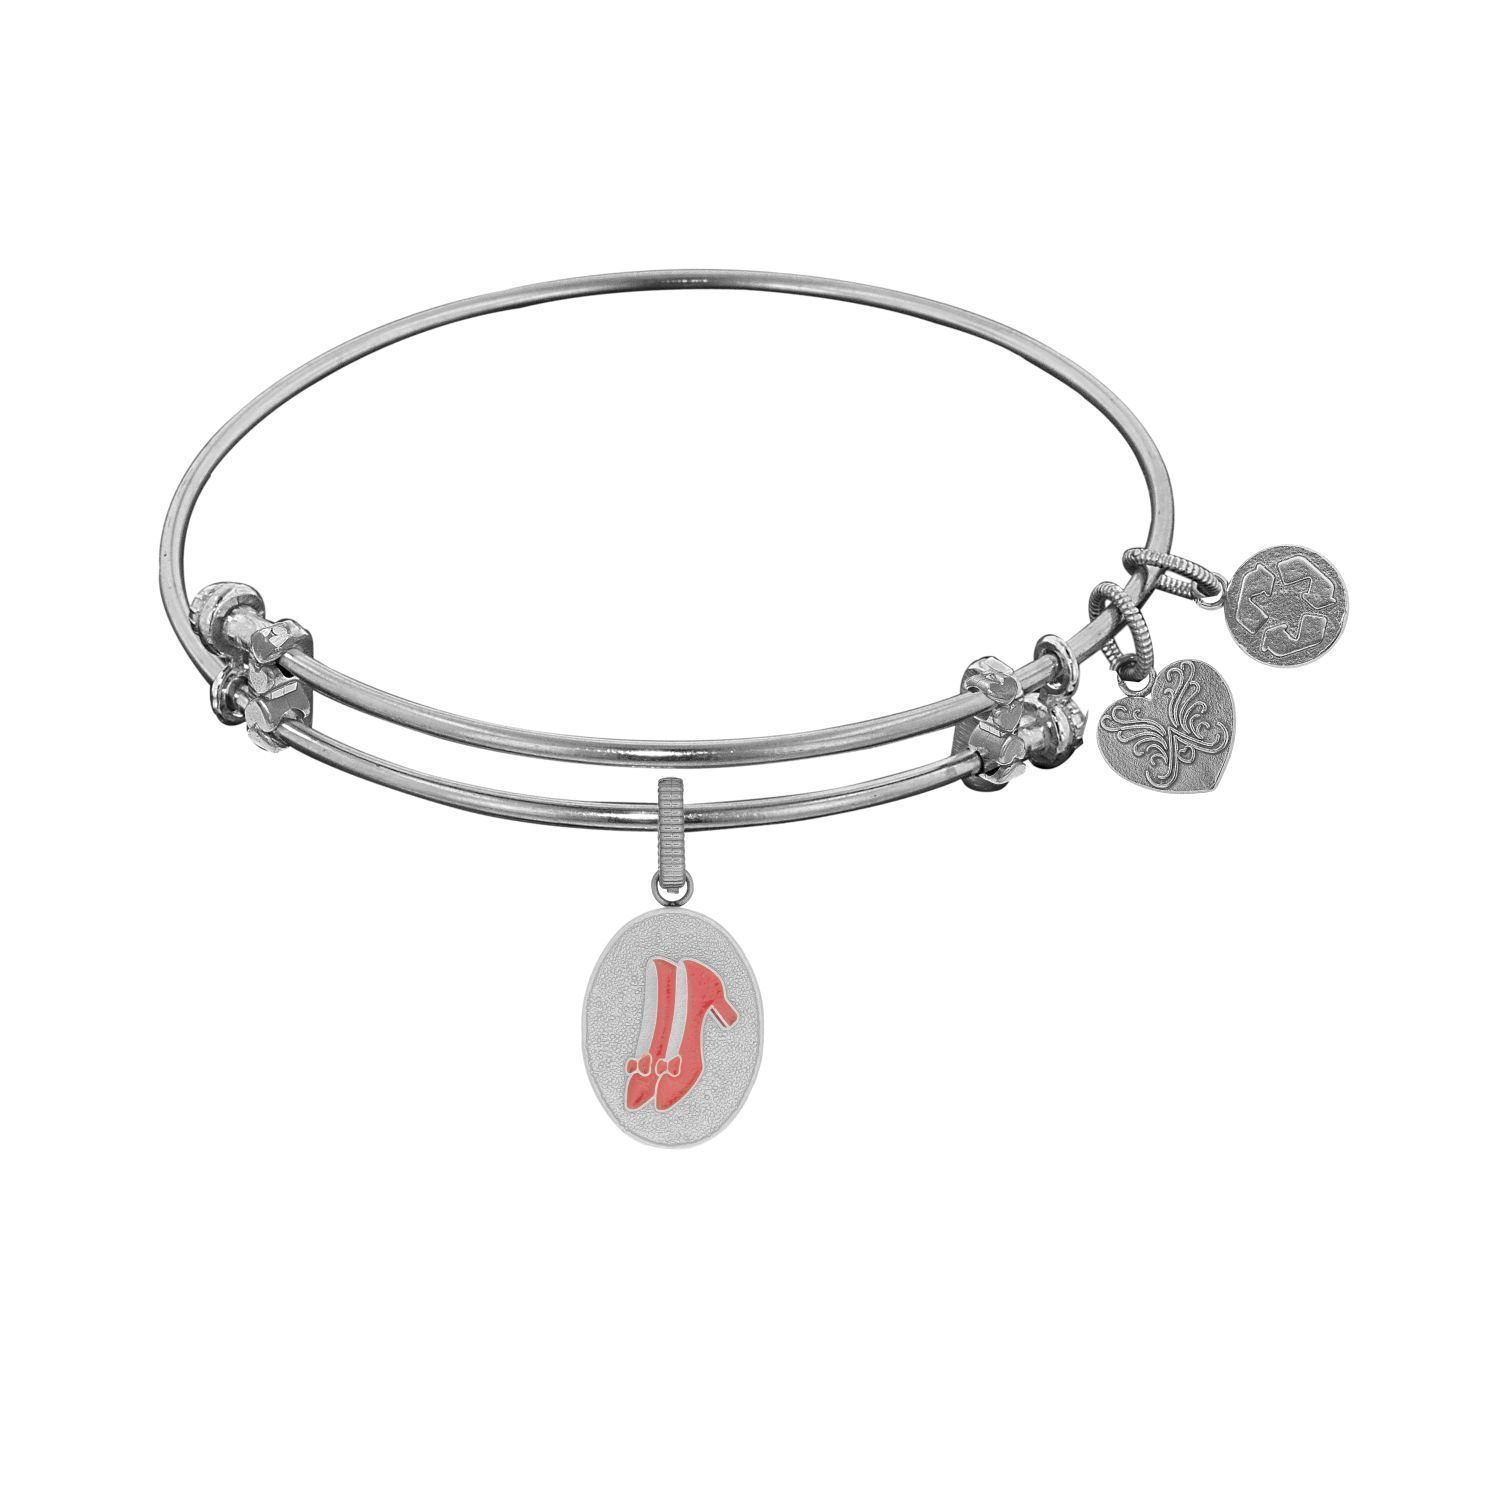 Angelica Wizard Of Oz Ruby Slippers Charm Bangle Bracelet (Wizard of Oz Ruby Slippers--White), Women's, Size: 7.5 Inch